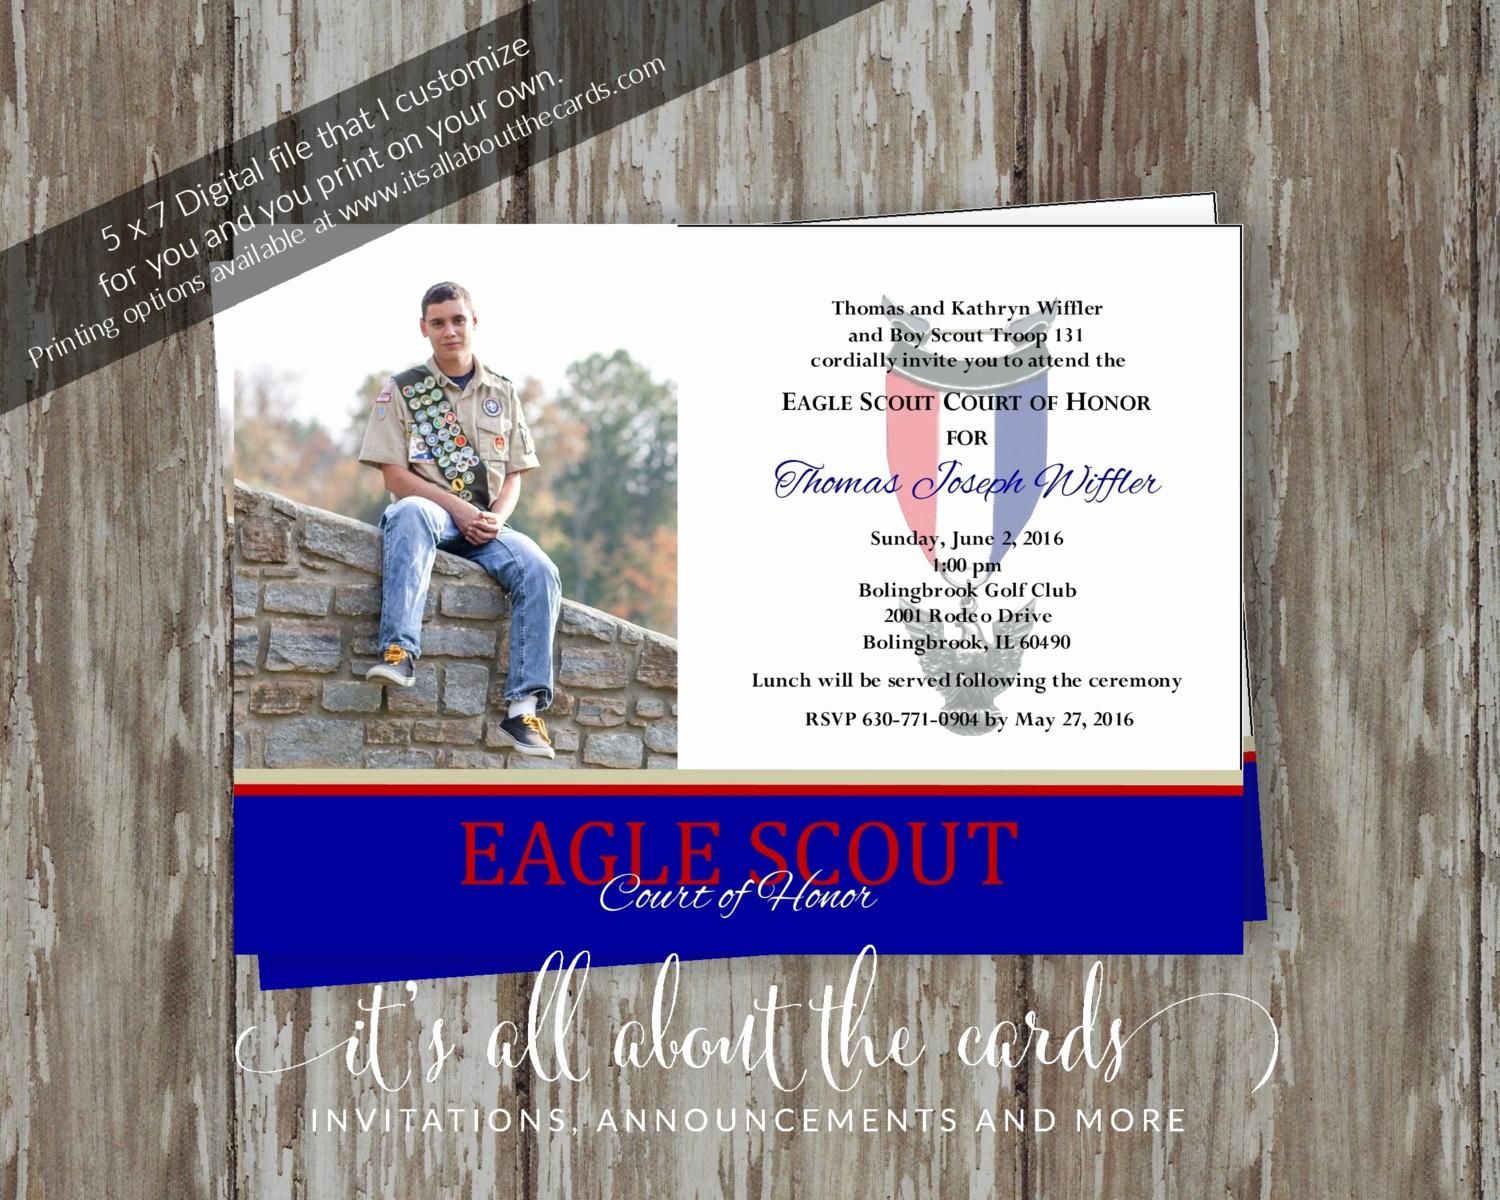 Eagle Scout Invitation Wording Unique Eagle Scout Court Of Honor Invitation Mitment Photo